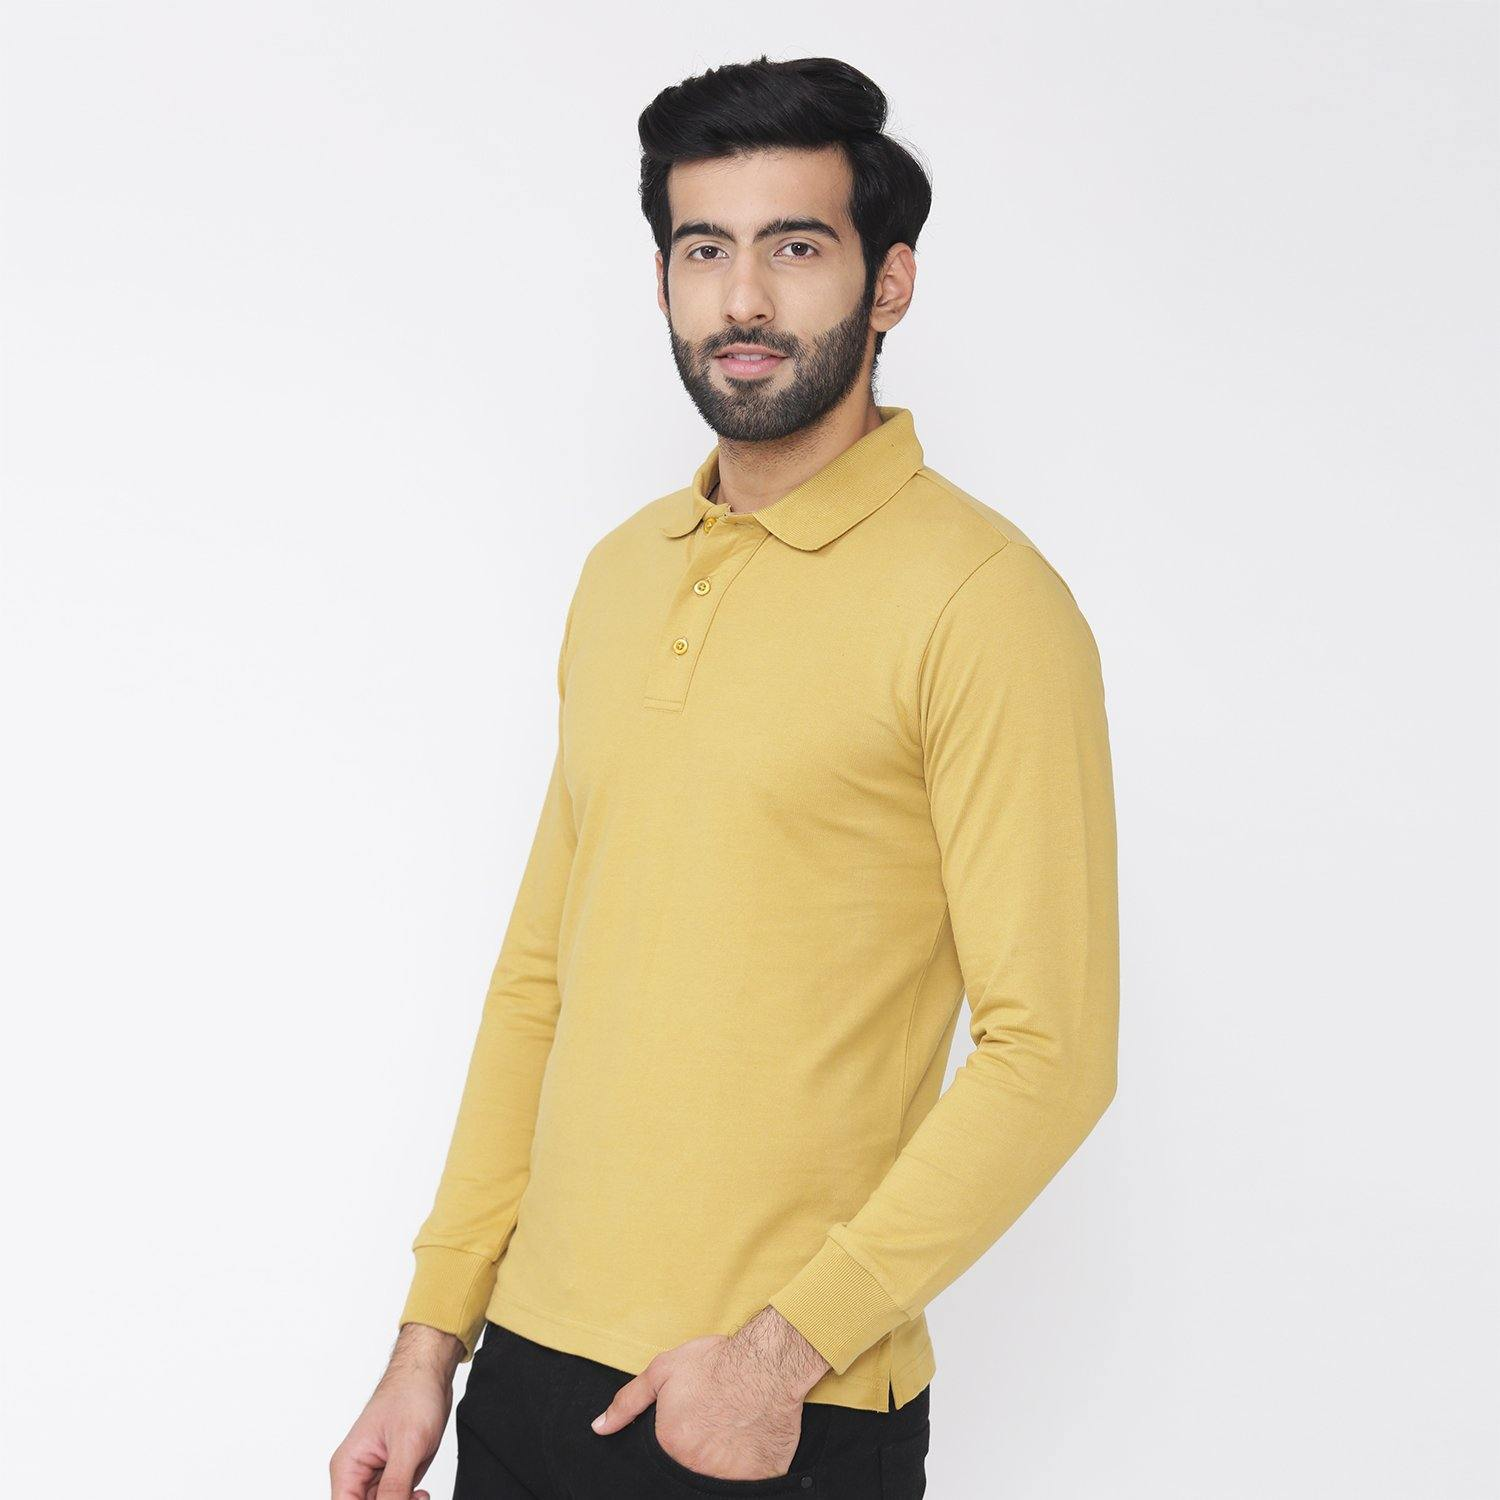 Men's Plain Winter Wear Polo Sweatshirt - Mustard Gold